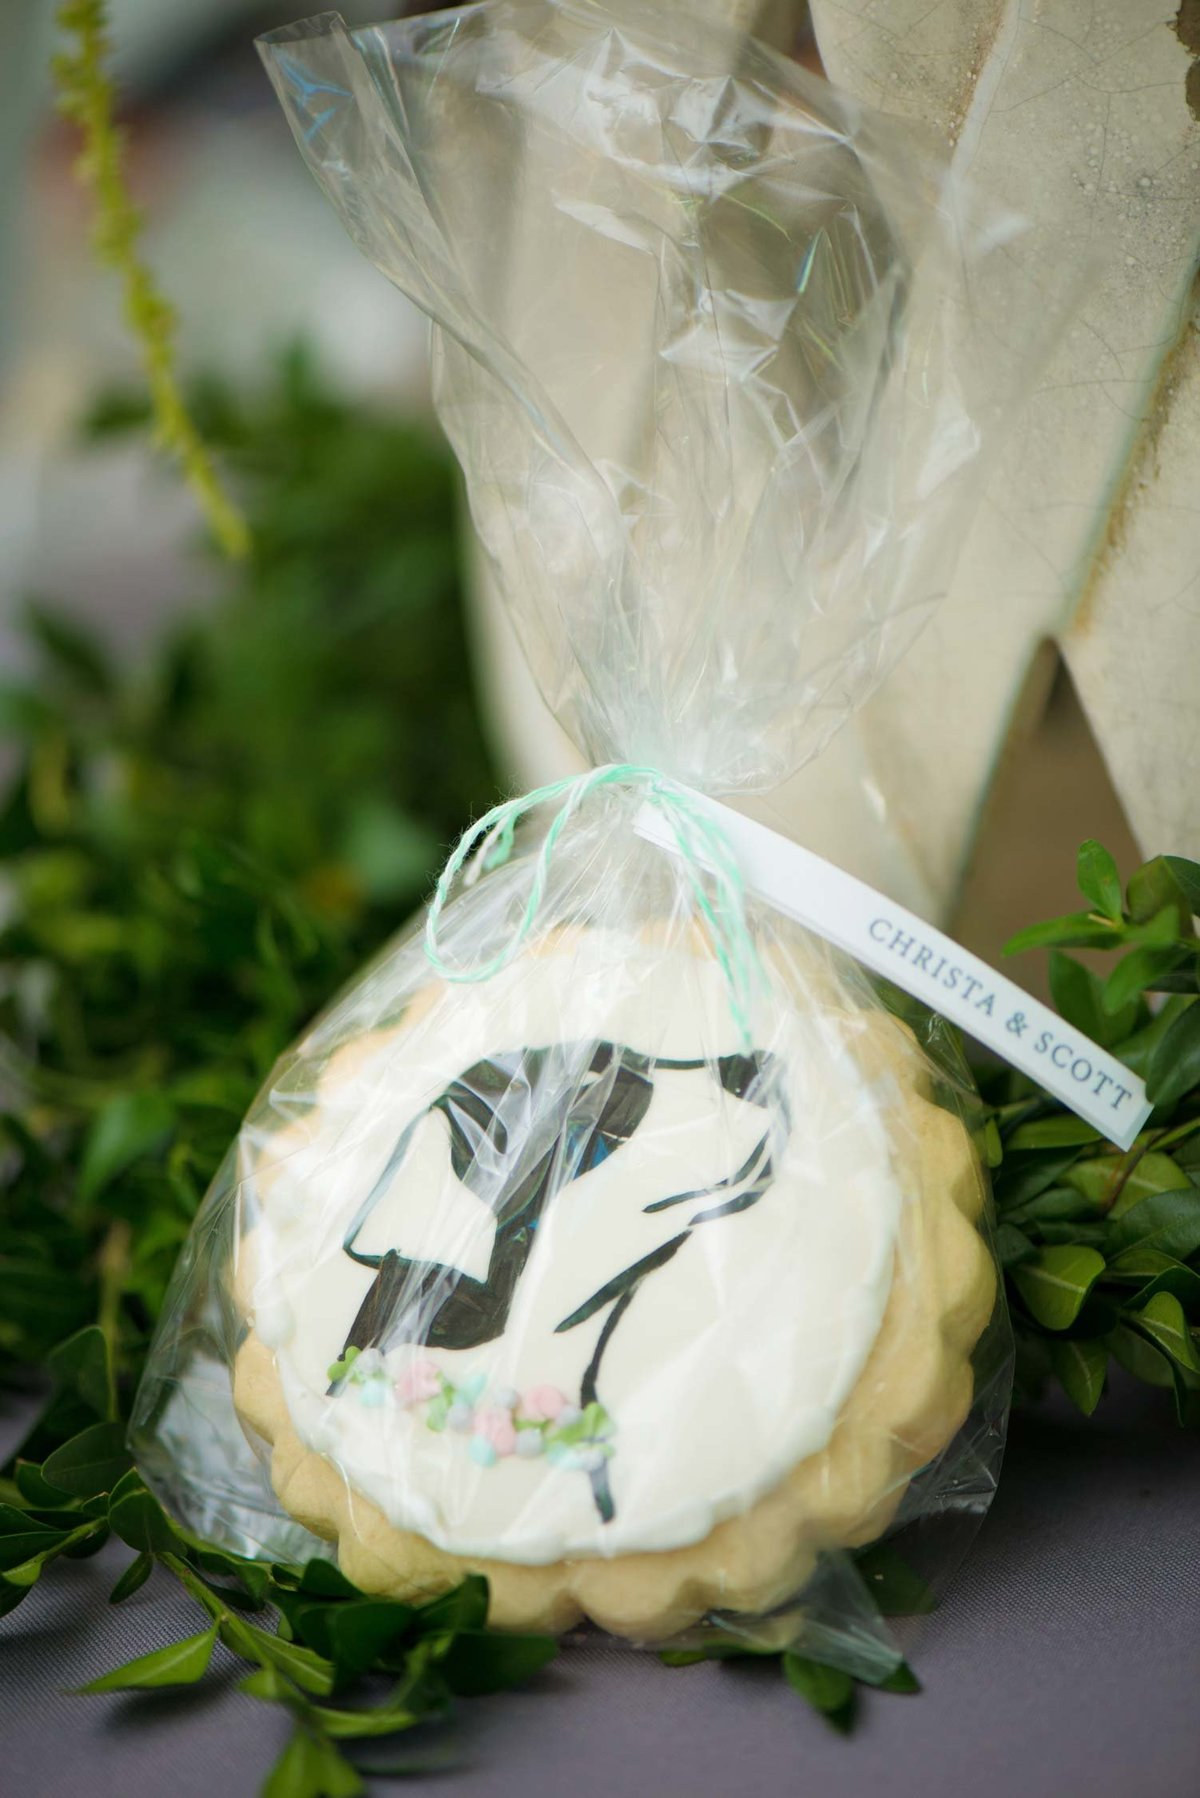 Cookie giveaways at Flowerfield